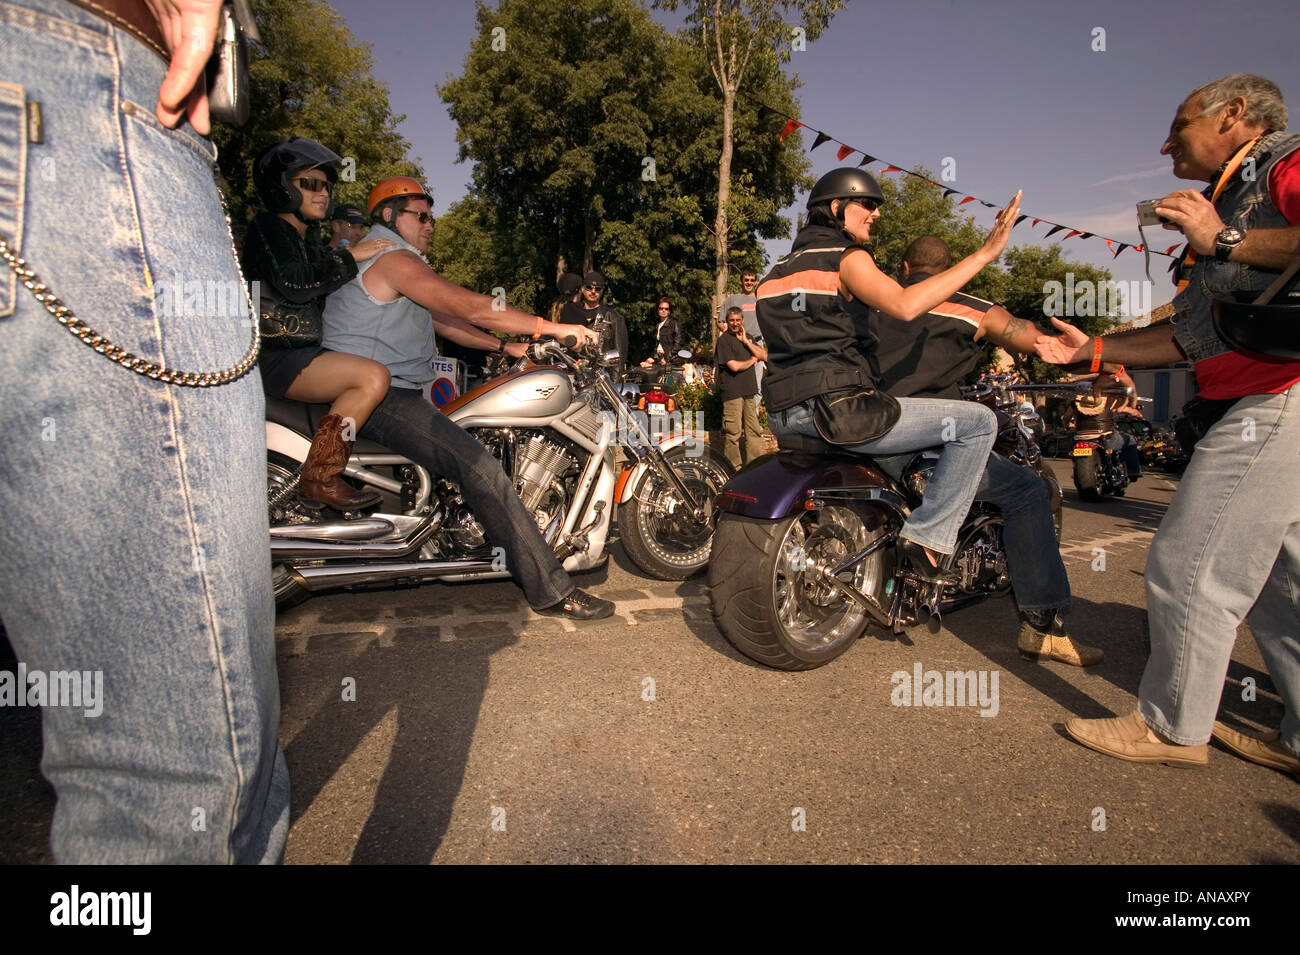 Group of bikers - Stock Image